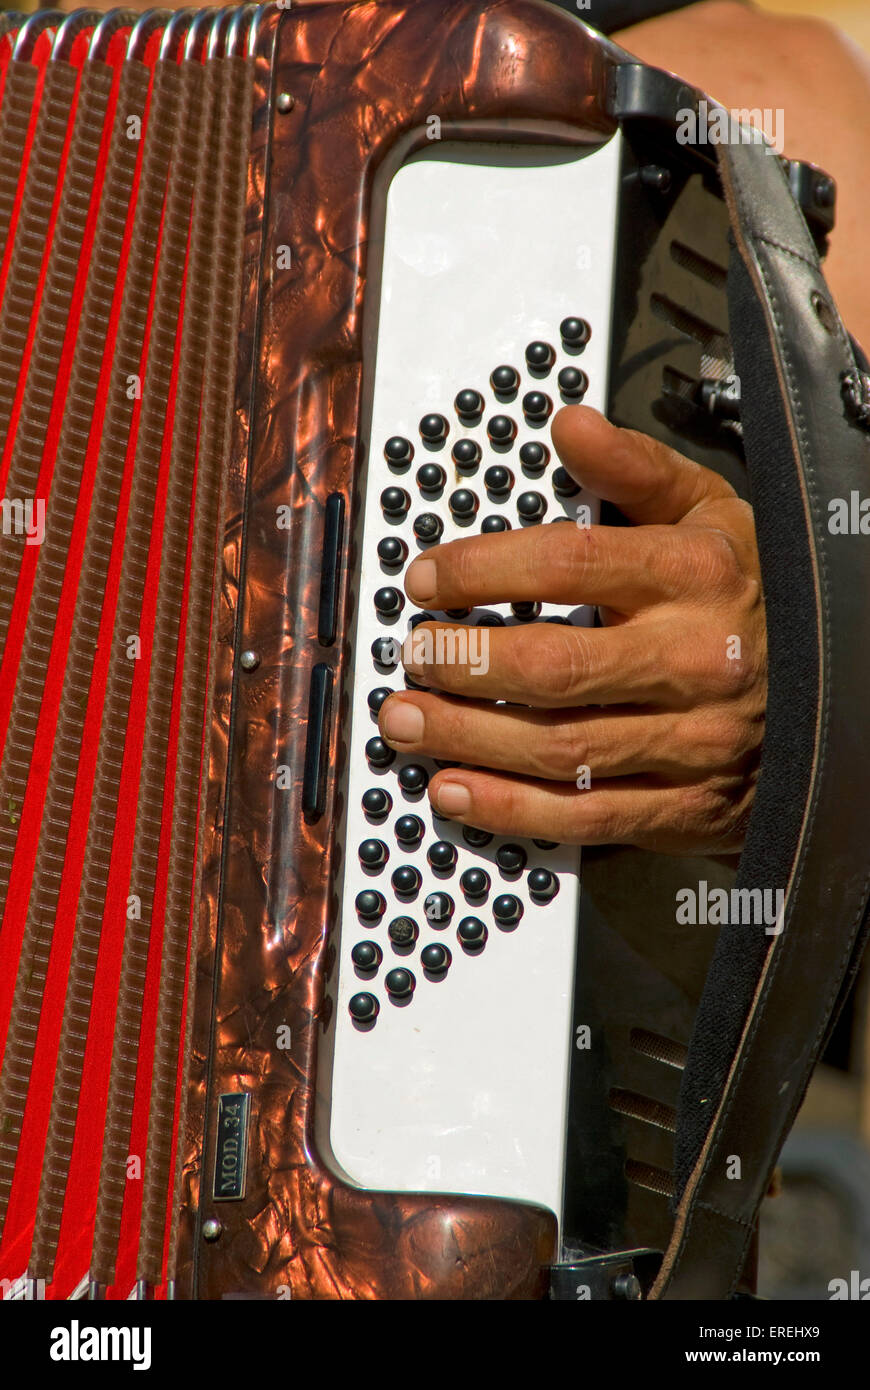 Close-up of accordionist's left hand, on buttons of piano accordion. - Stock Image